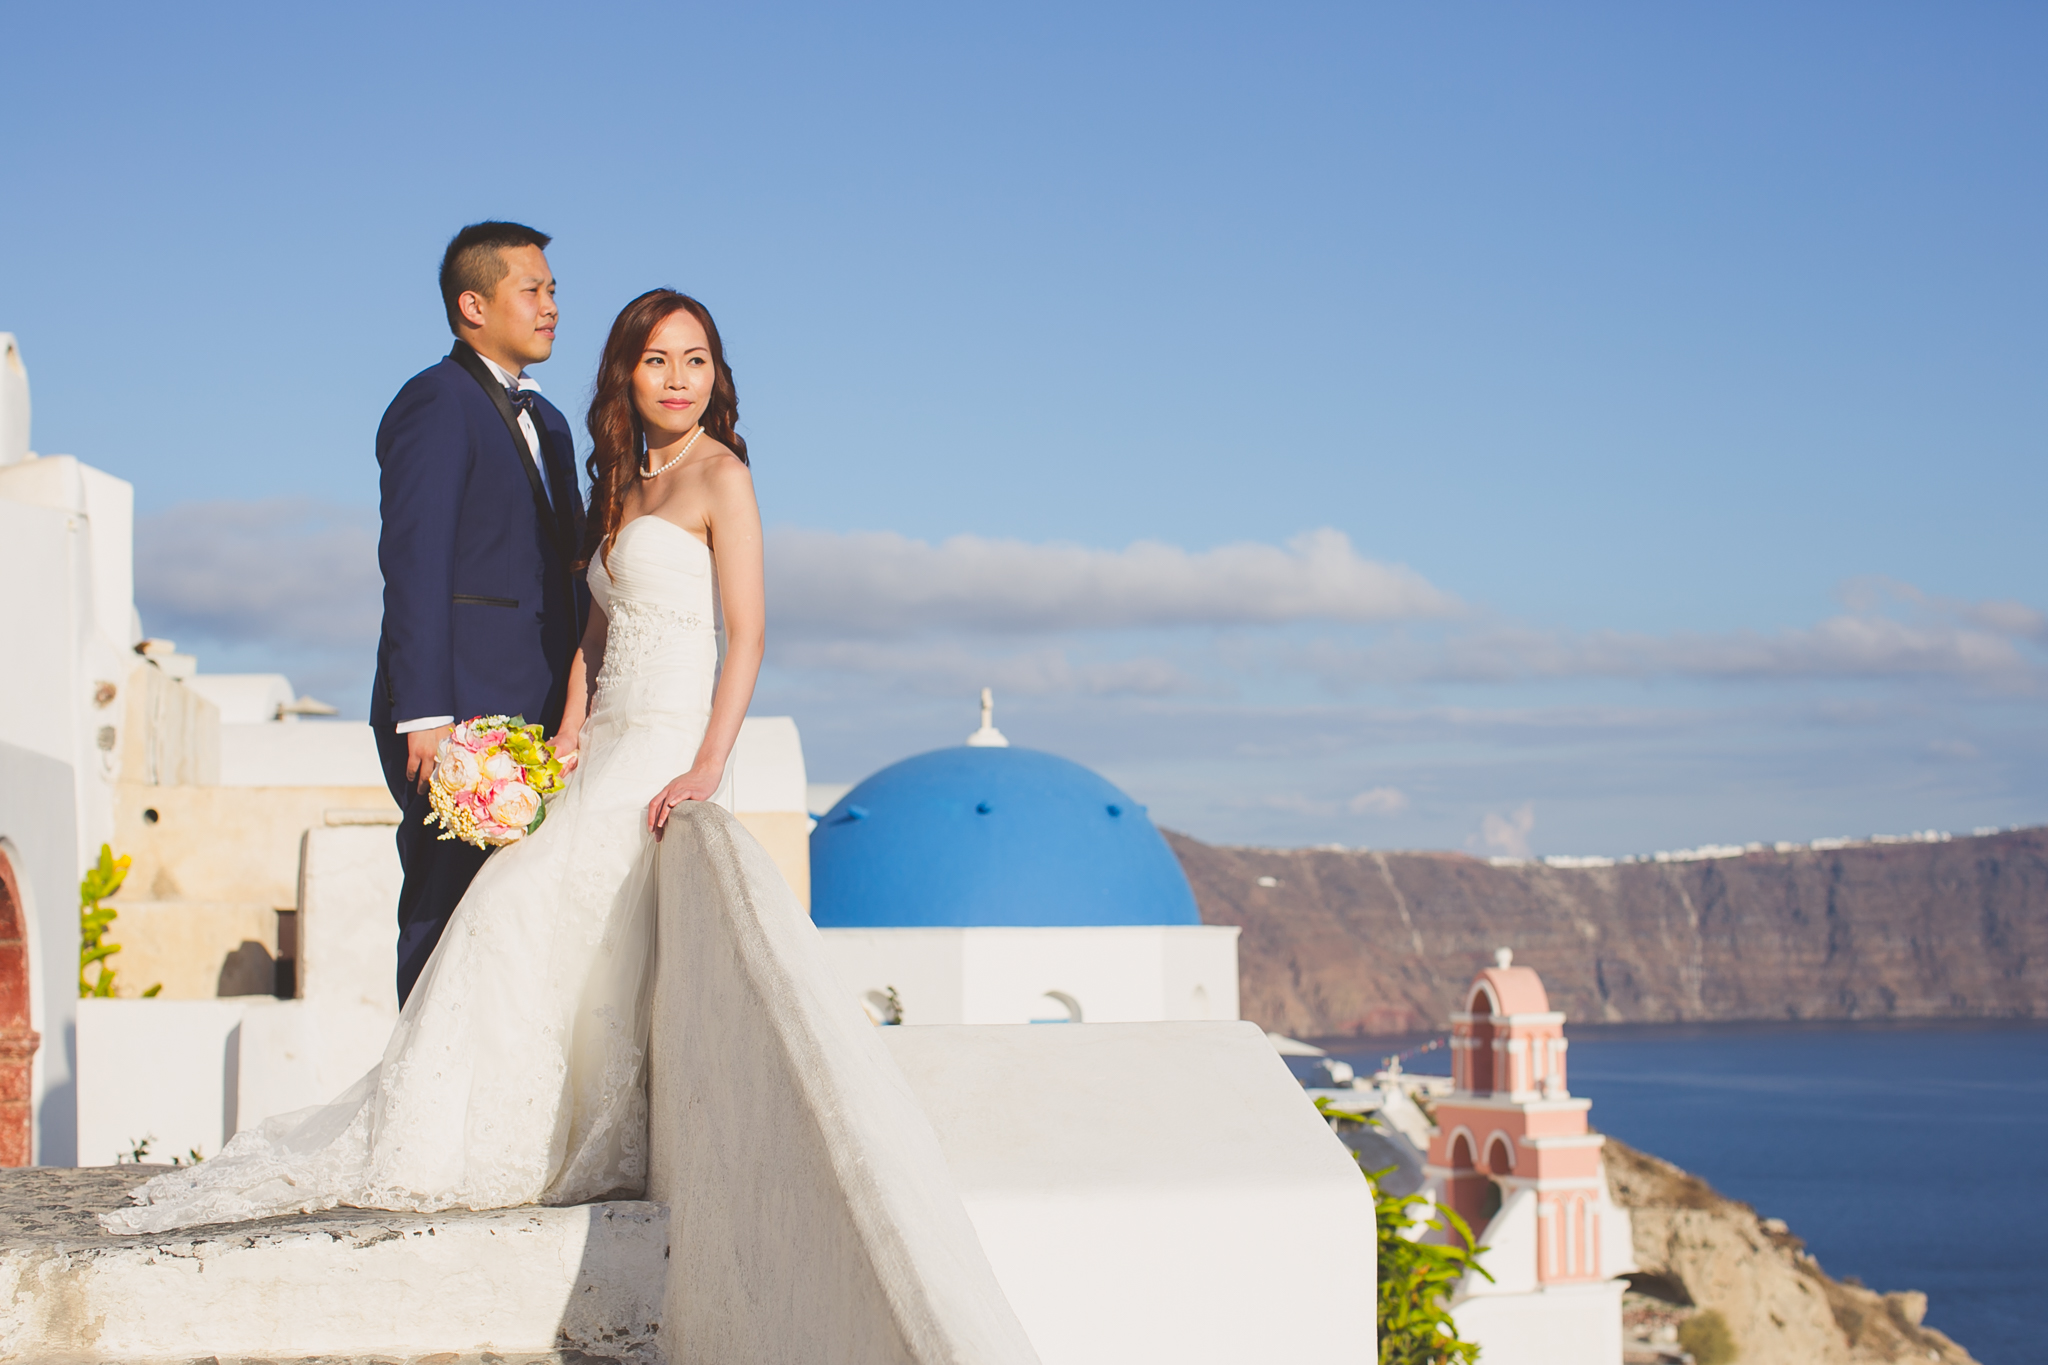 Destination pre wedding photography with blue roofs in Santorini Greece